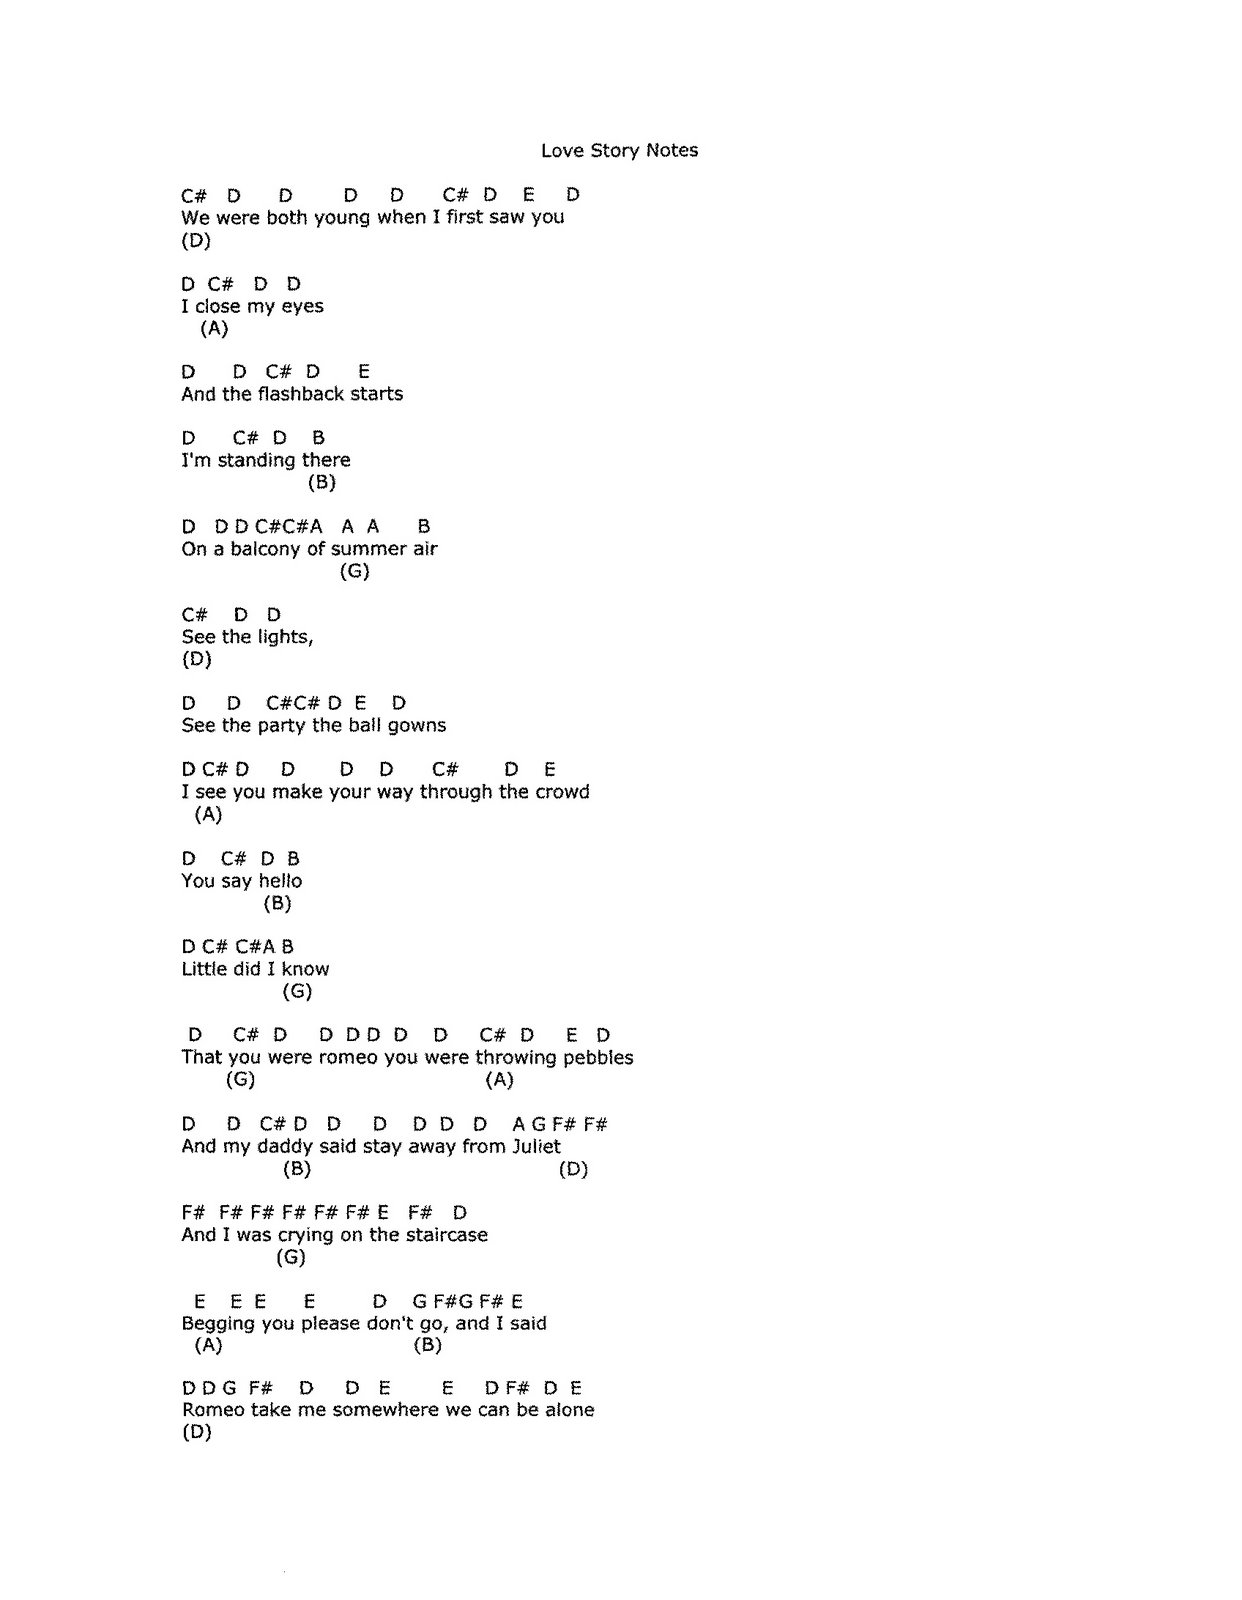 Taylor swift guitar chords images guitar chords examples page 1 fatherlandz images hexwebz Choice Image